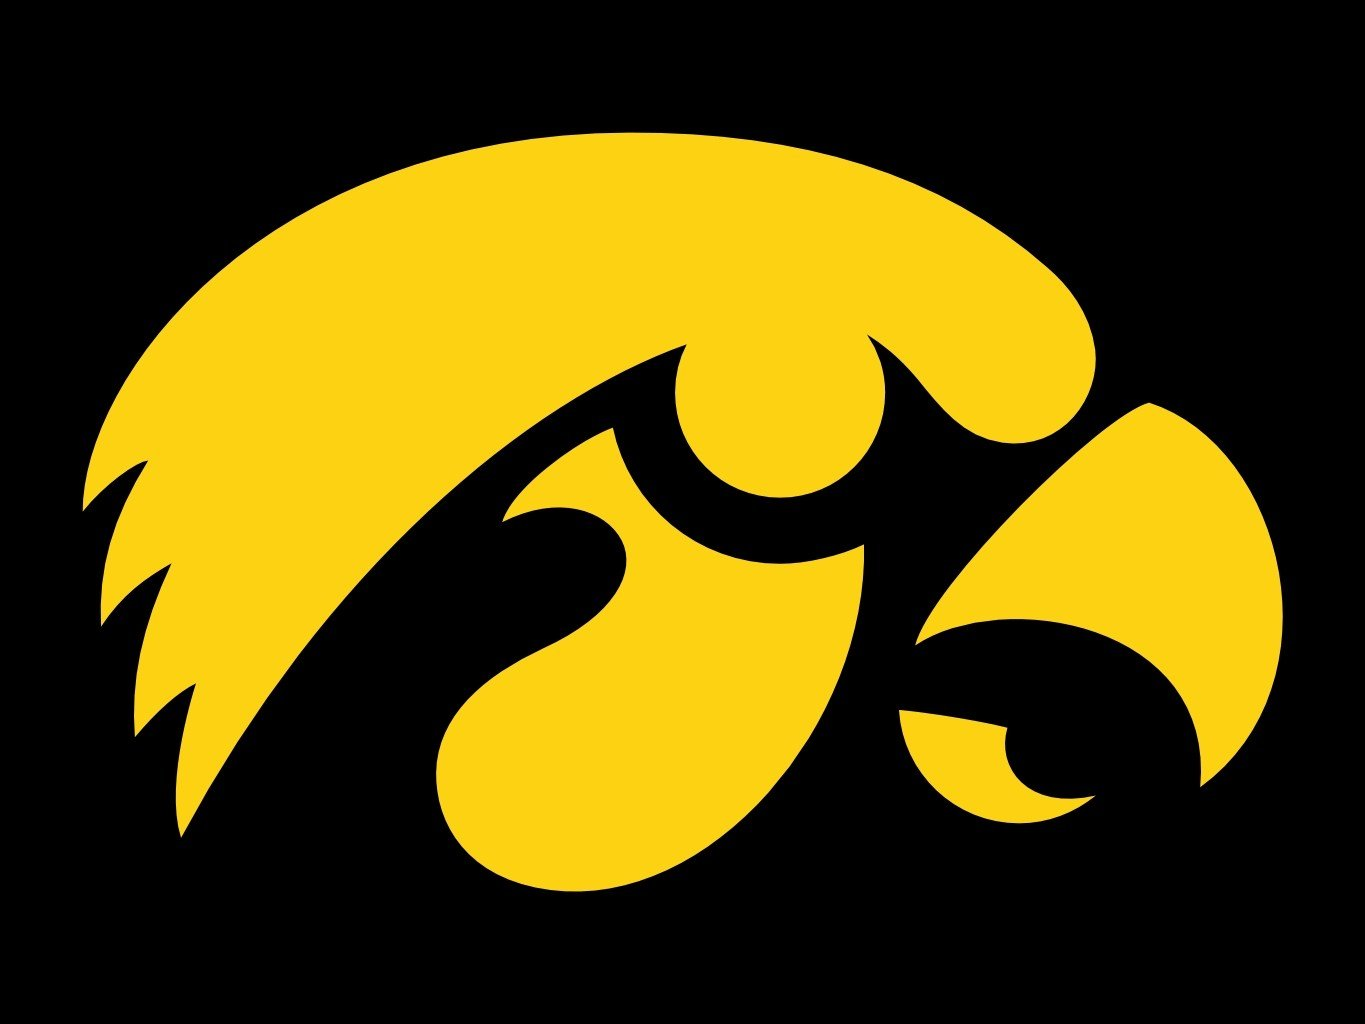 Down 20, Iowa comes back to beat IL in overtime